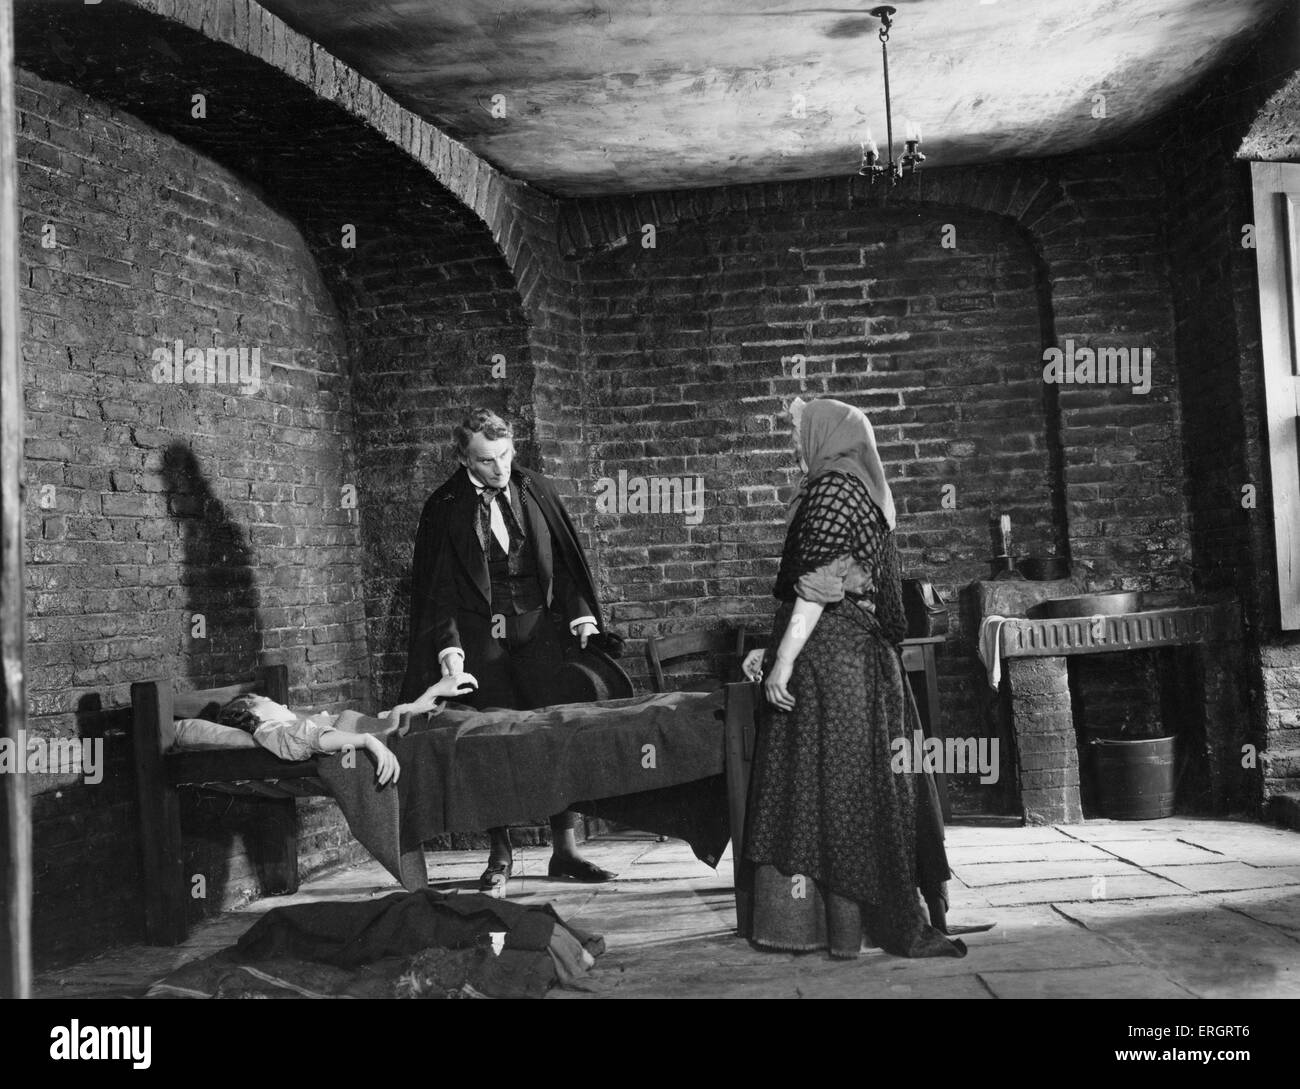 Oliver Twist film still from 1948 Rank Film production of Charles Dickens British novelist, 7 February 1812 - 9 - Stock Image